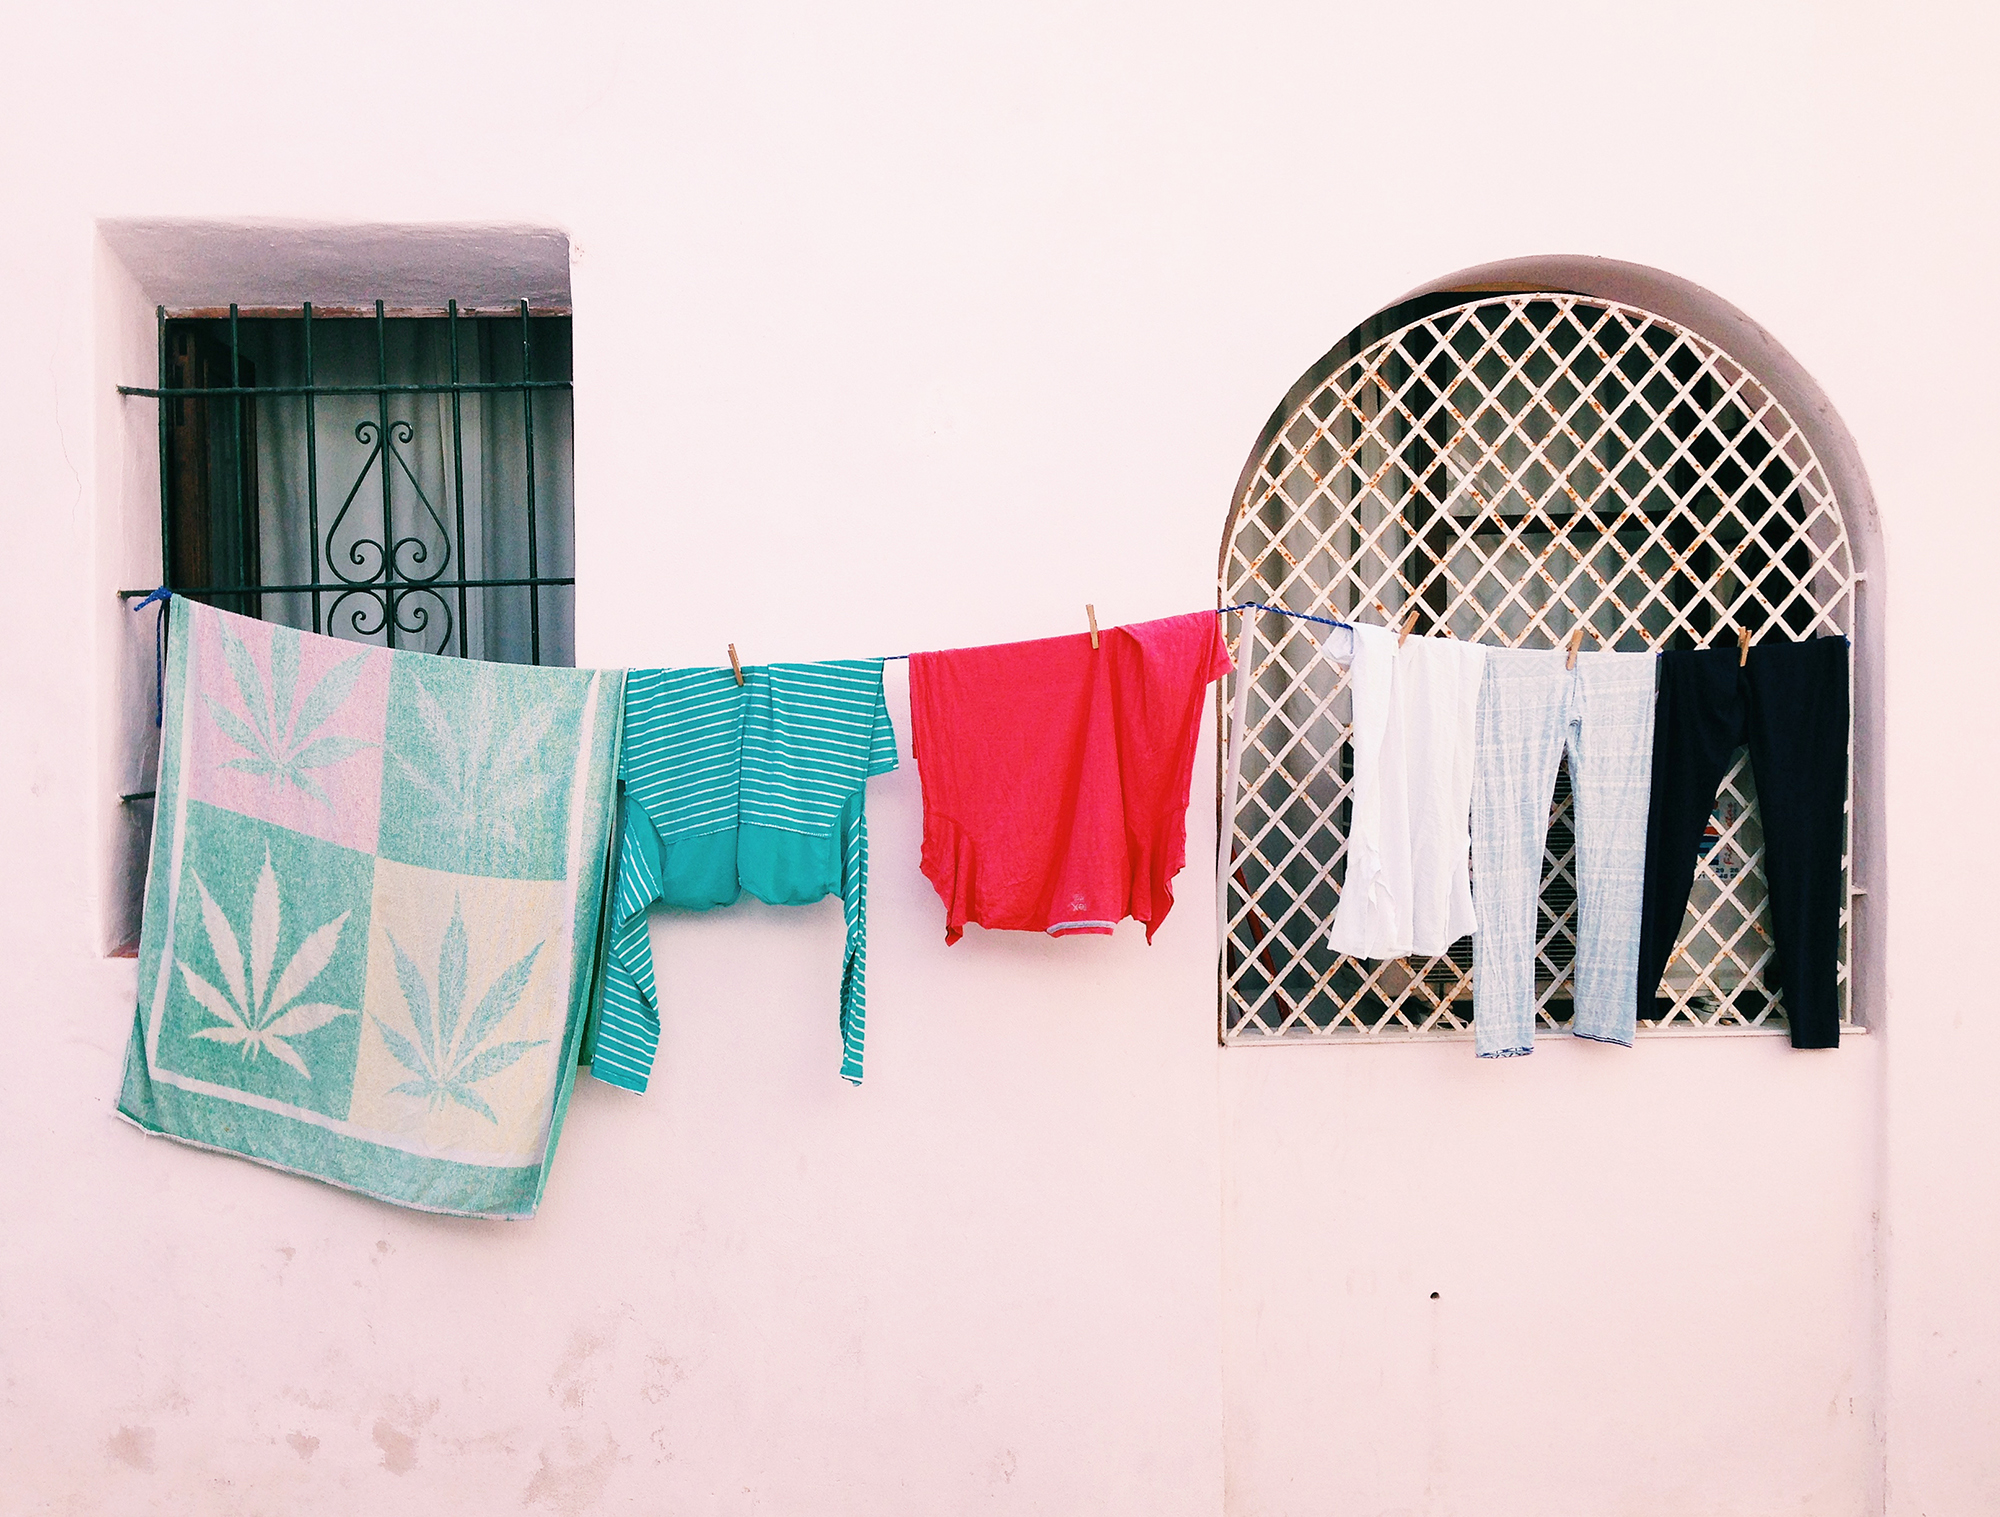 Clothesline hanging in Ibiza, Spain. Photo by STUDIO 1208